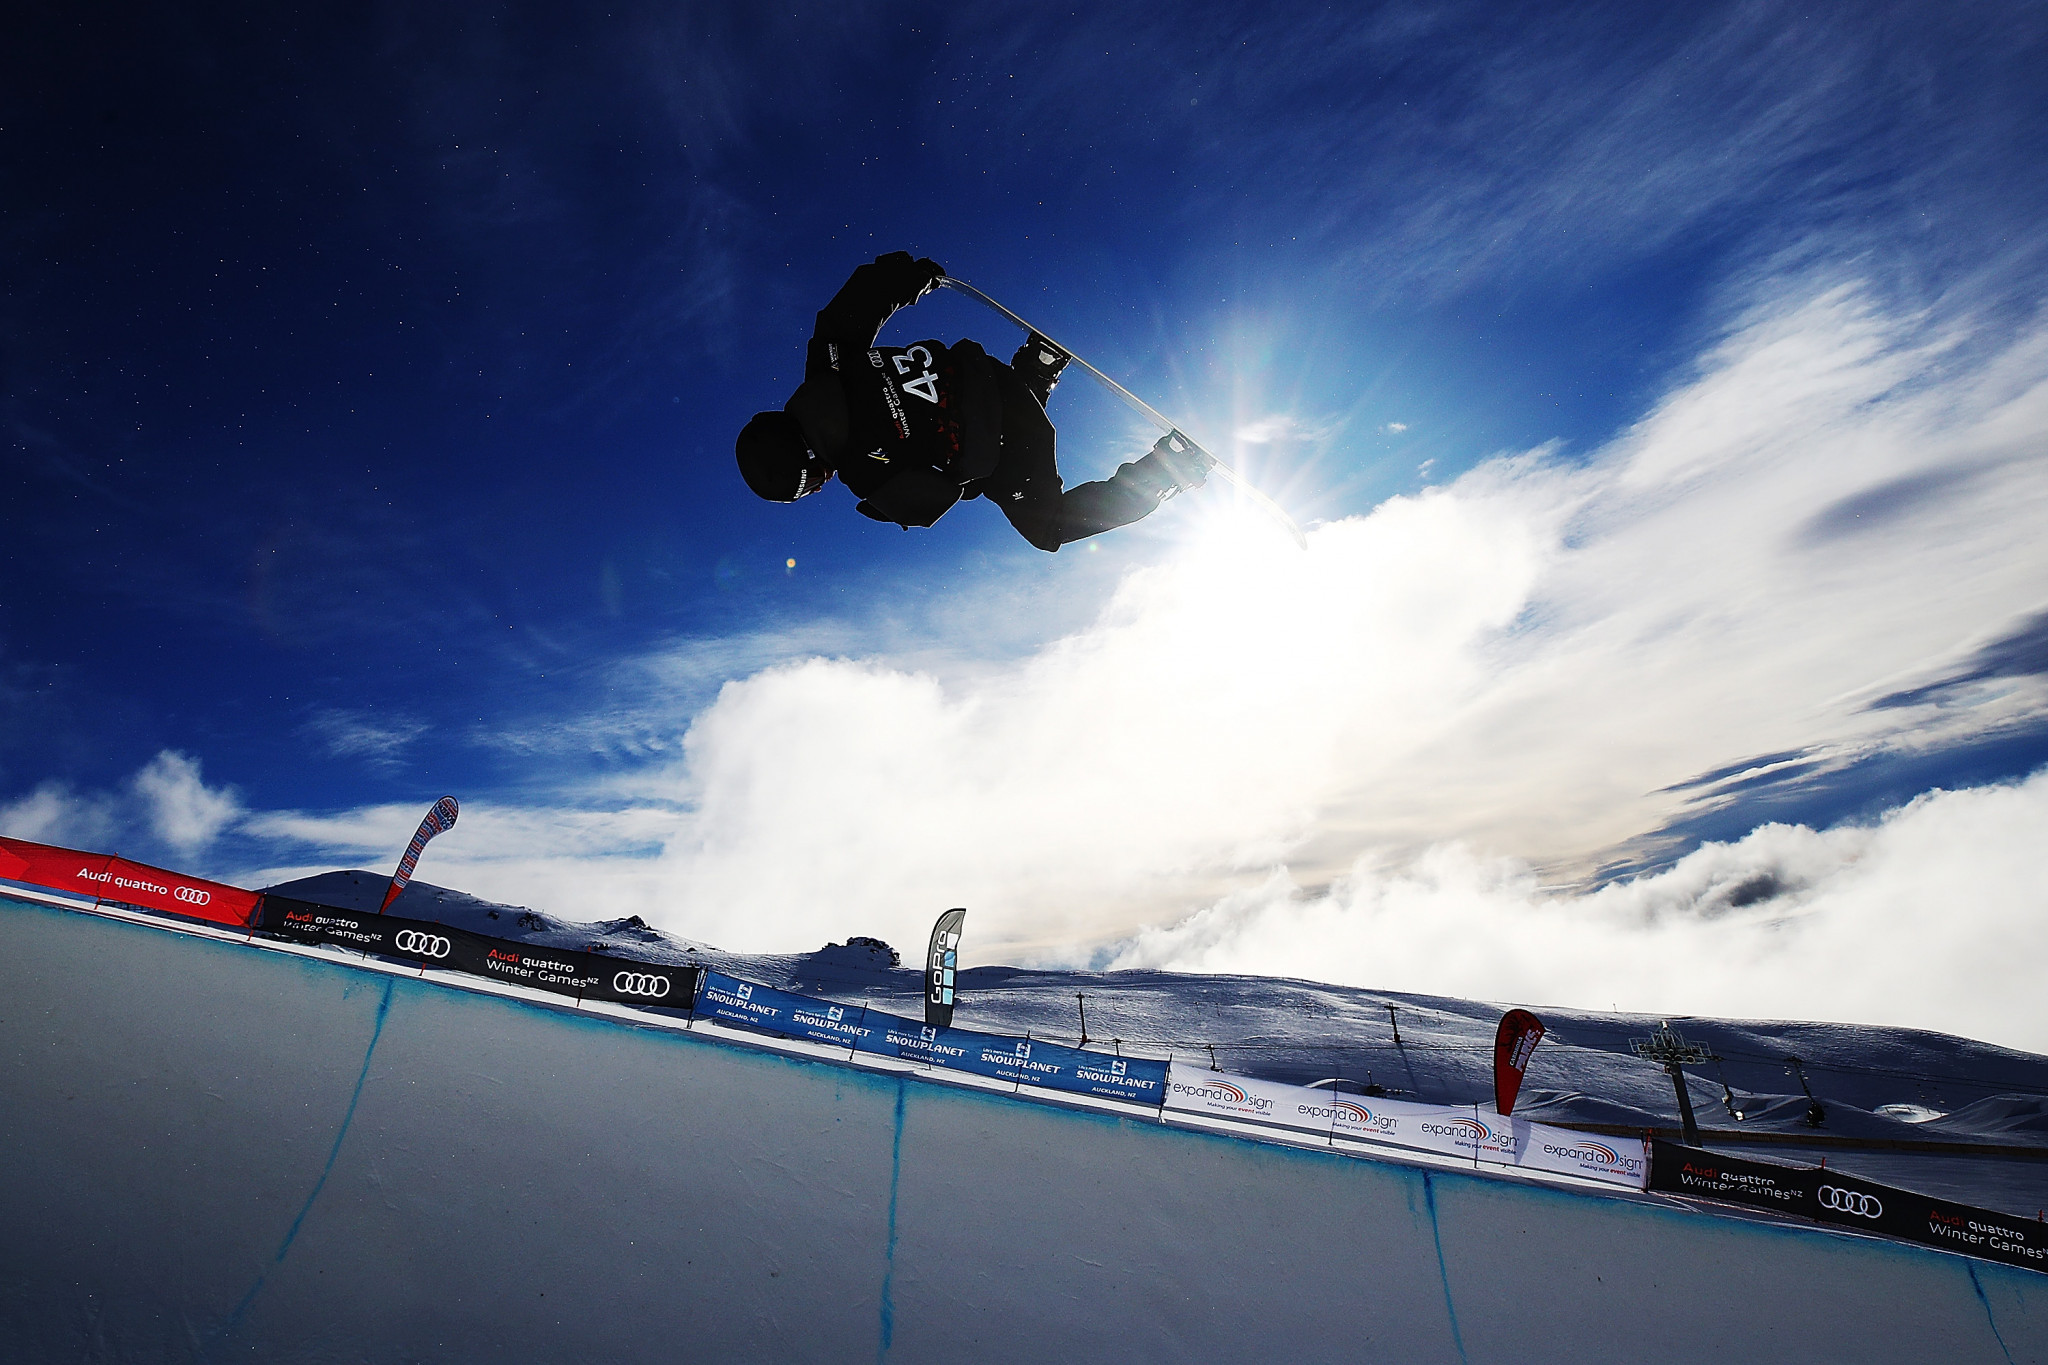 New Zealand to host FIS Junior Freestyle Ski and Snowboard World Championships